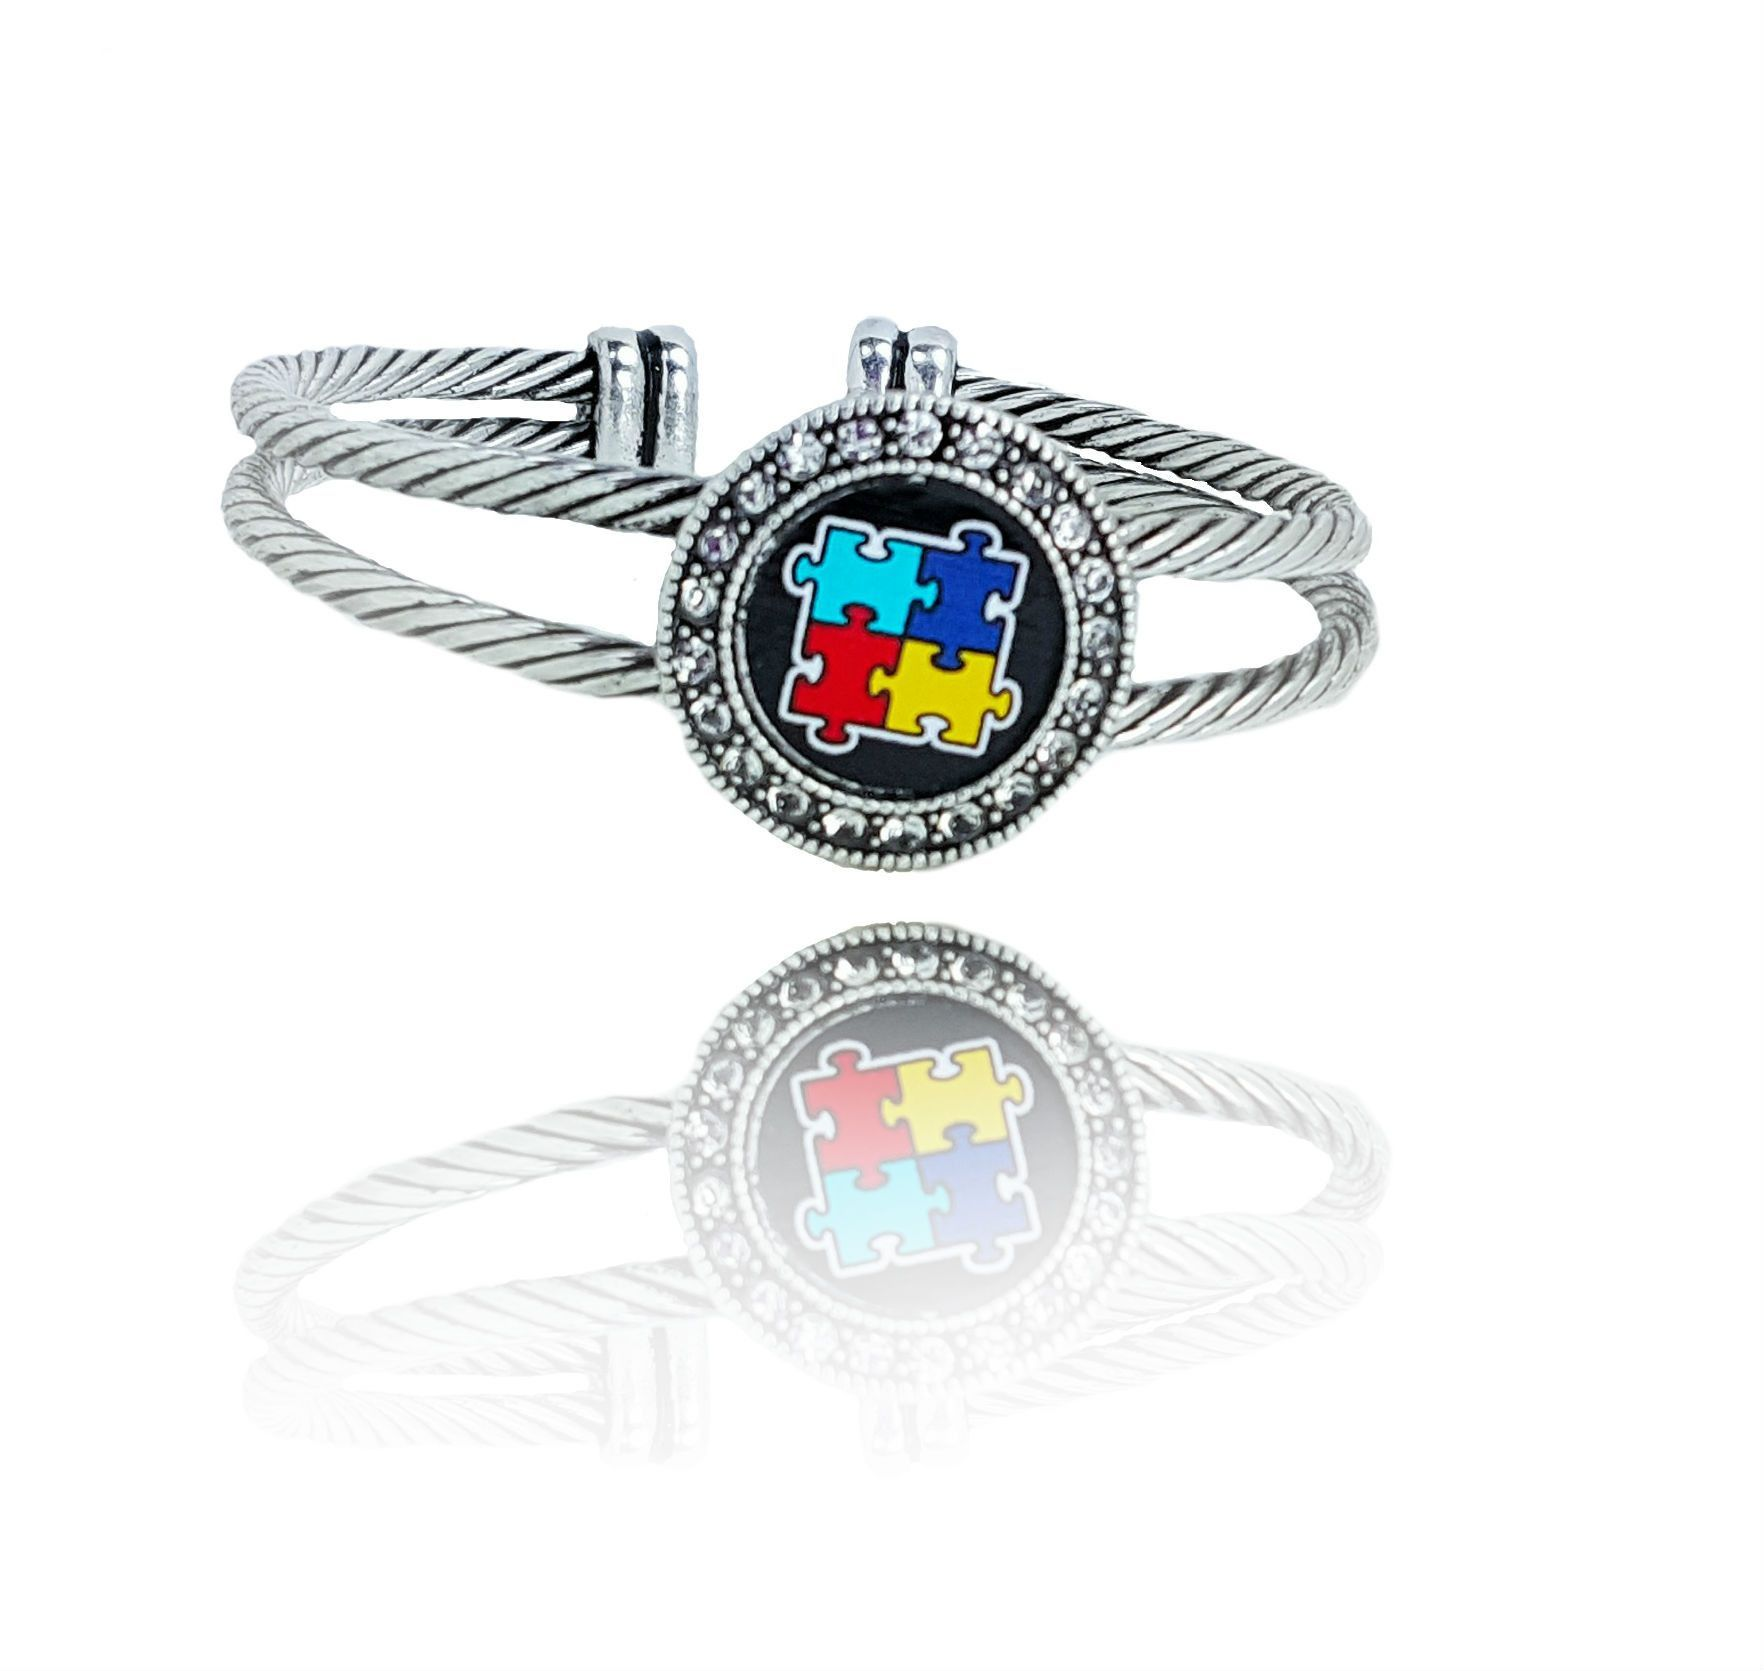 Autism puzzle piece charm silver plated bangle rhinestone crystal autism puzzle piece charm silver plated bangle rhinestone crystal lined autism symbol womens adjustable bangle bracelet buycottarizona Image collections